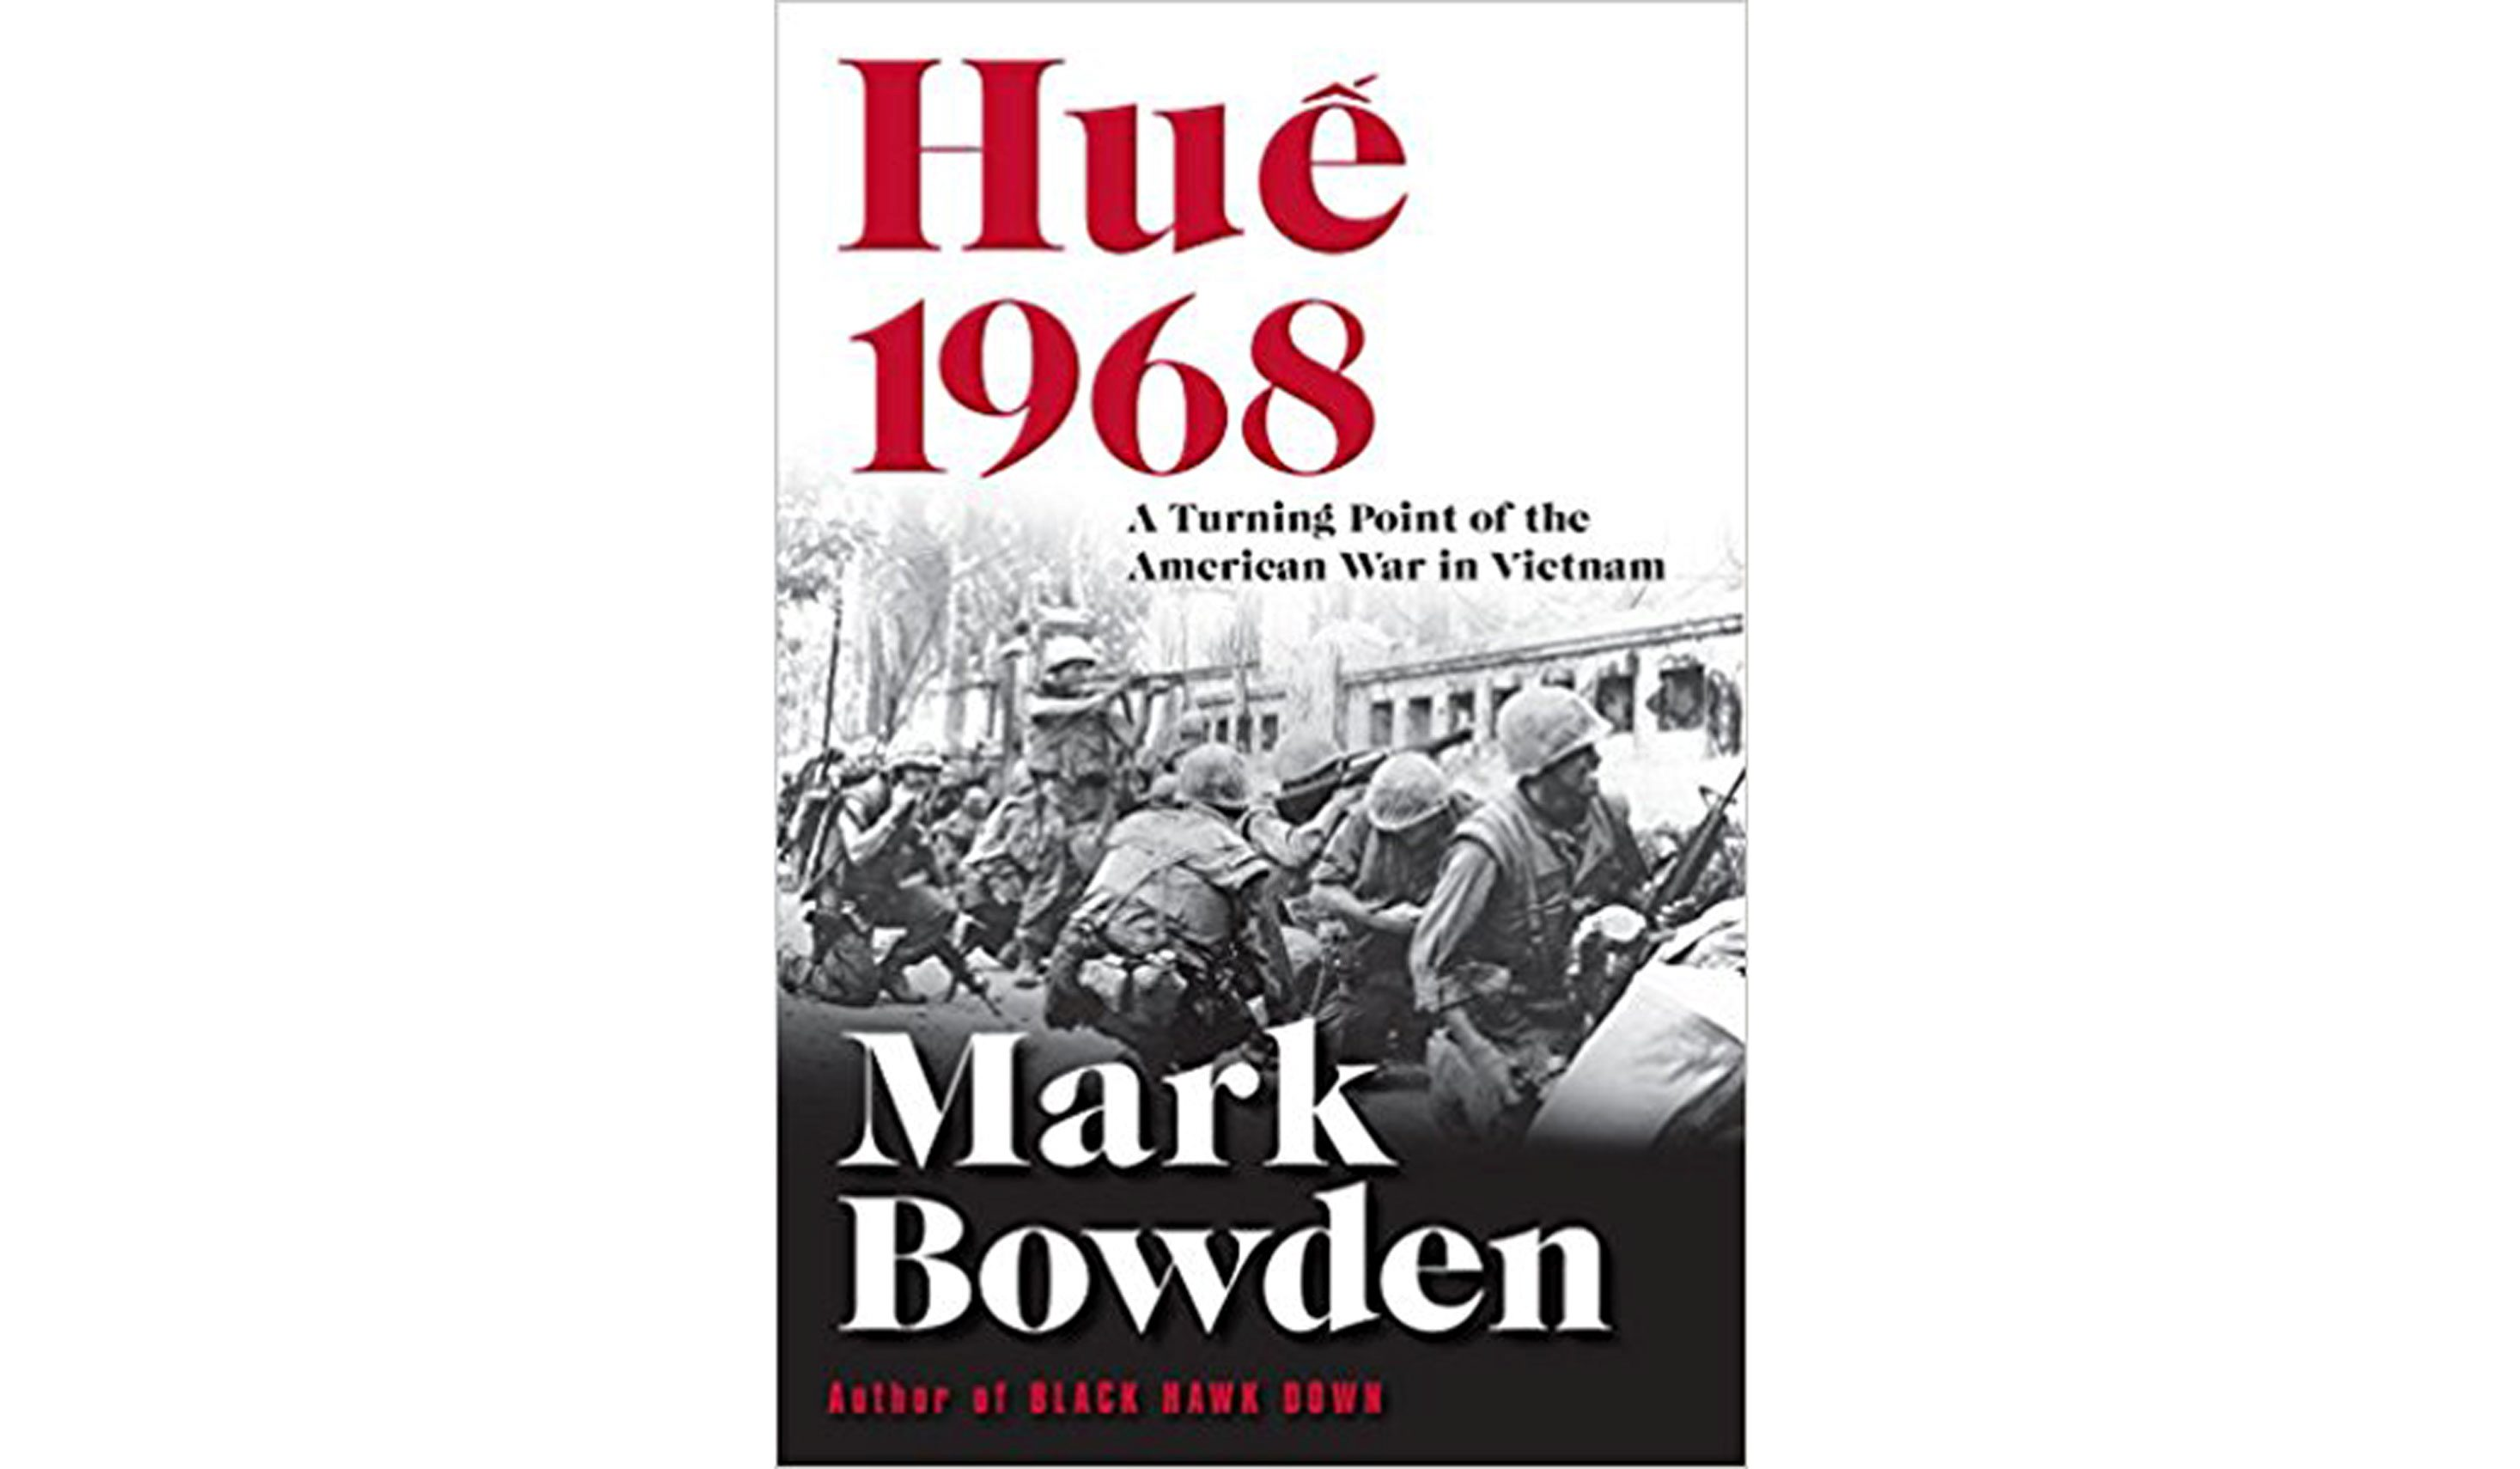 BOOK REVIEW: \'Hue 1968: A Turning Point of the American War in ...